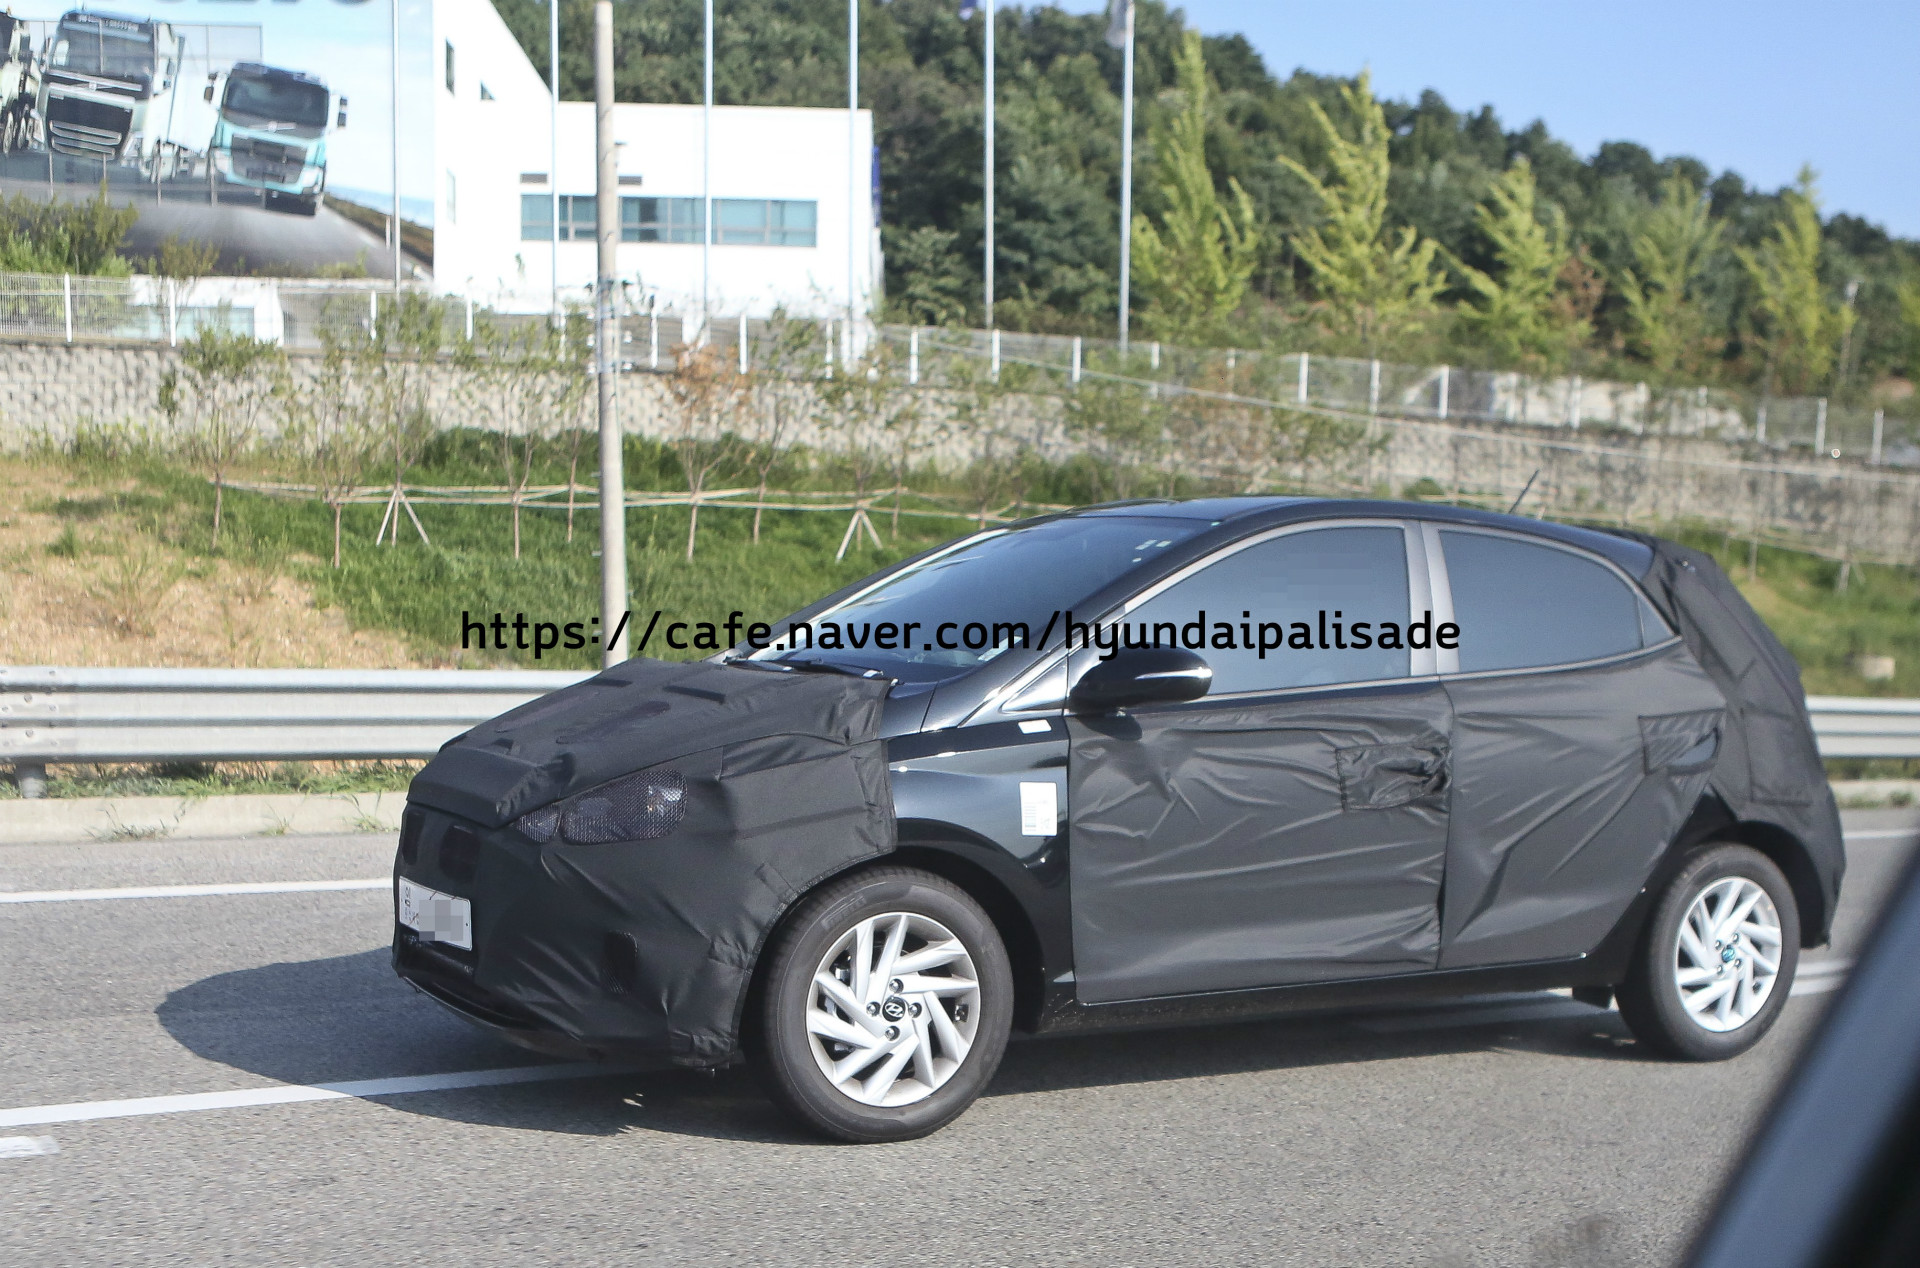 c2900568b5f0e What was thought to be the next-gen Hyundai i10 could be the new HB20